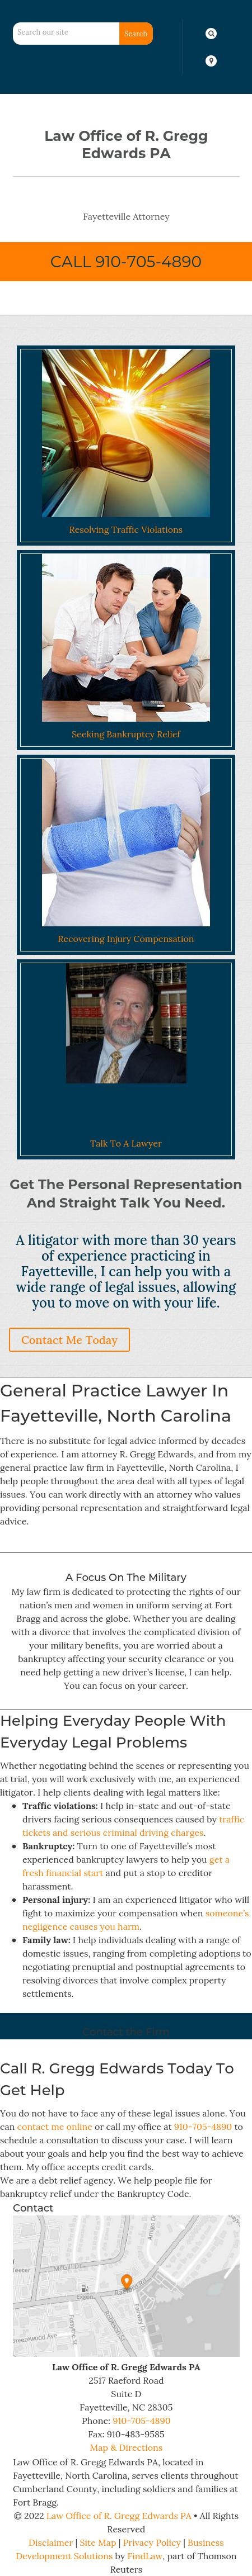 R. Gregg Edwards, P.A. - Fayetteville NC Lawyers